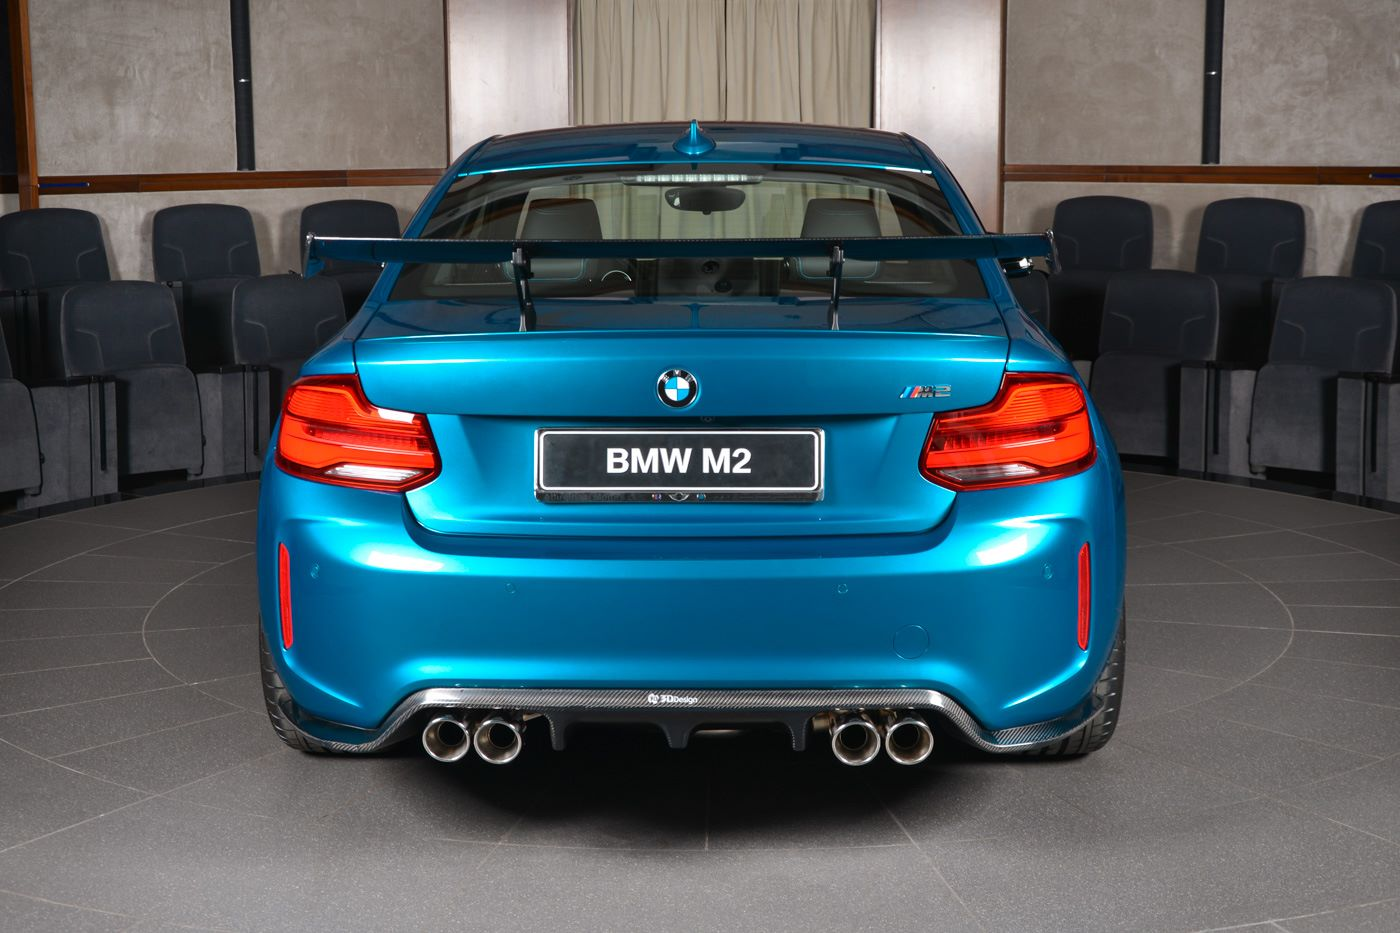 BMW M2 Long Beach Blue carbon (18)